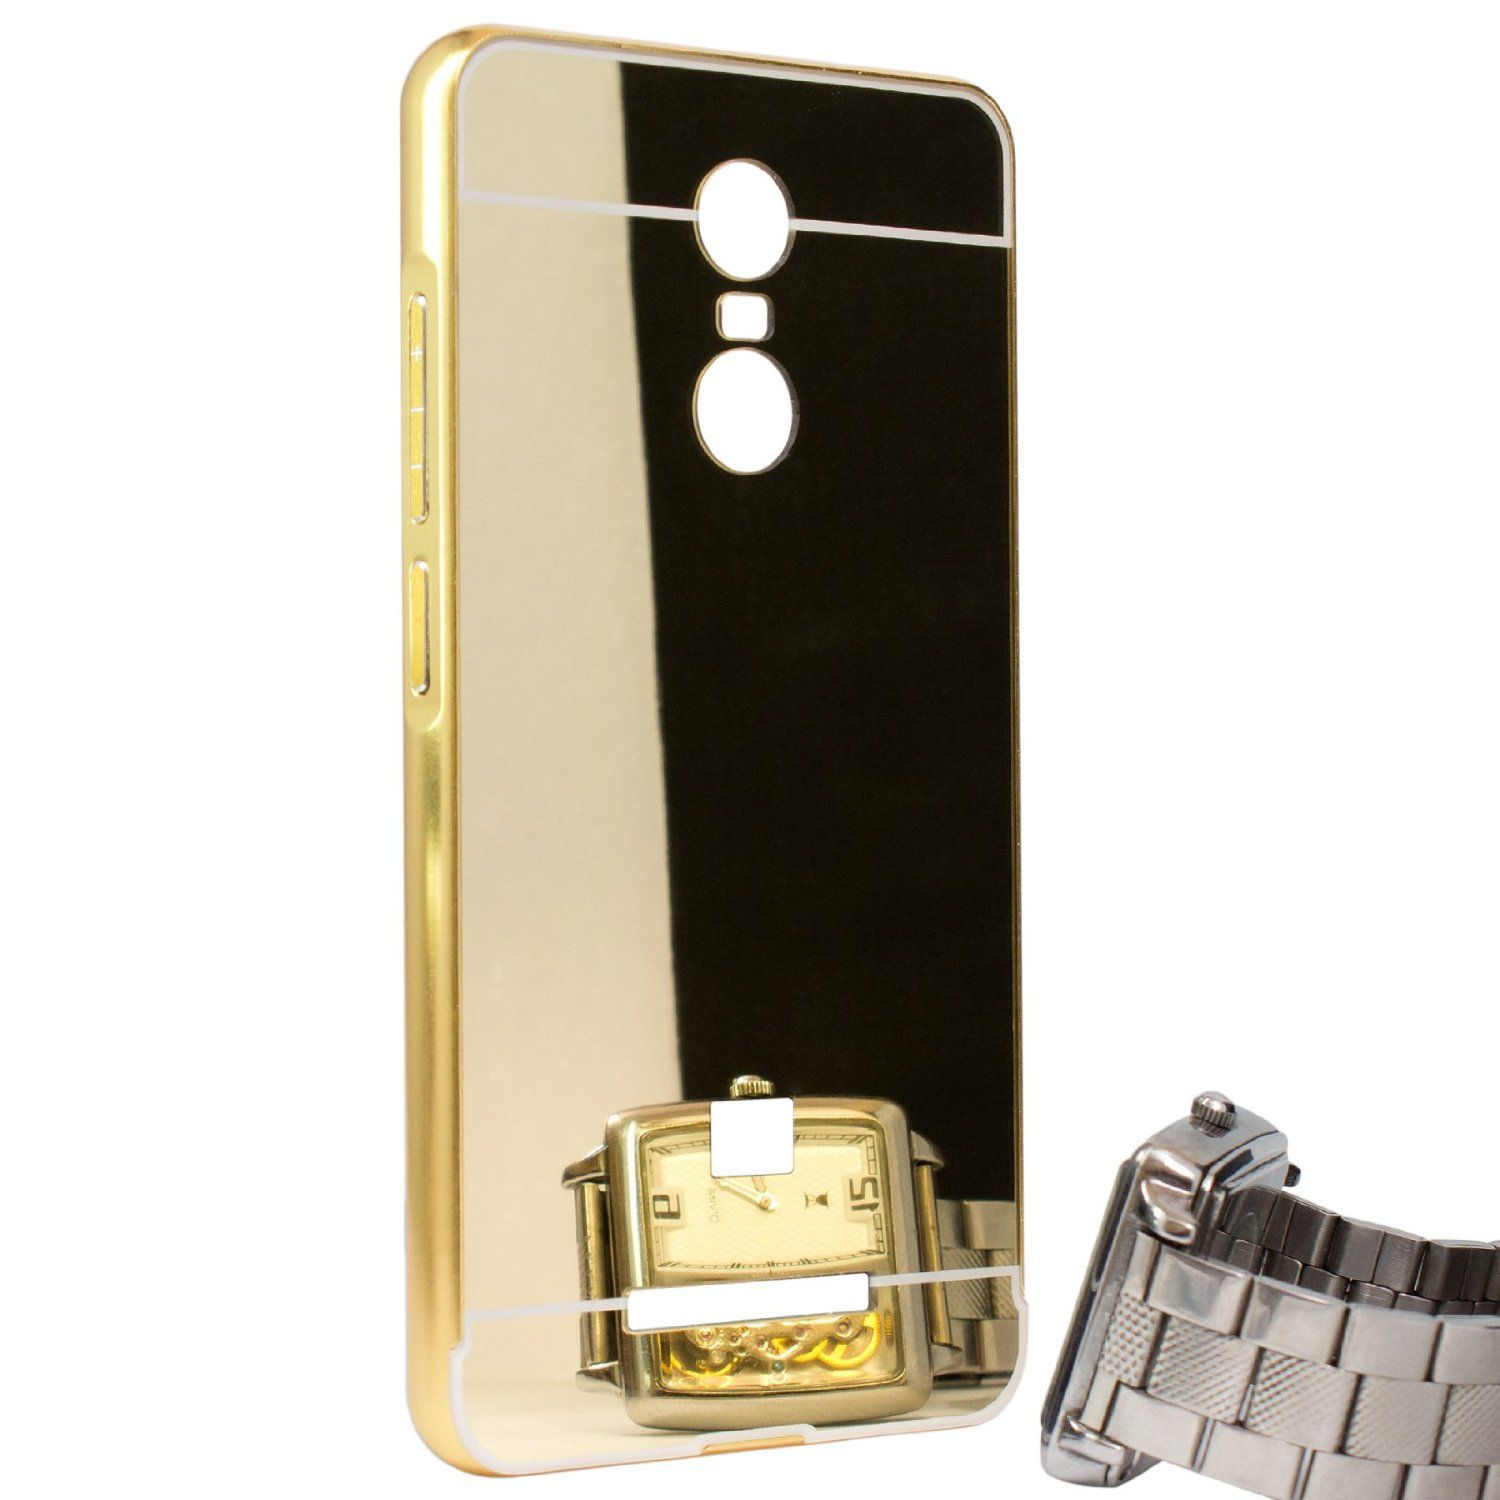 Style Crome Metal Bumper + Acrylic Mirror Back Cover Case For RedmiRedmi Note 3  Gold + Flexible Portable Thumb OK Stand